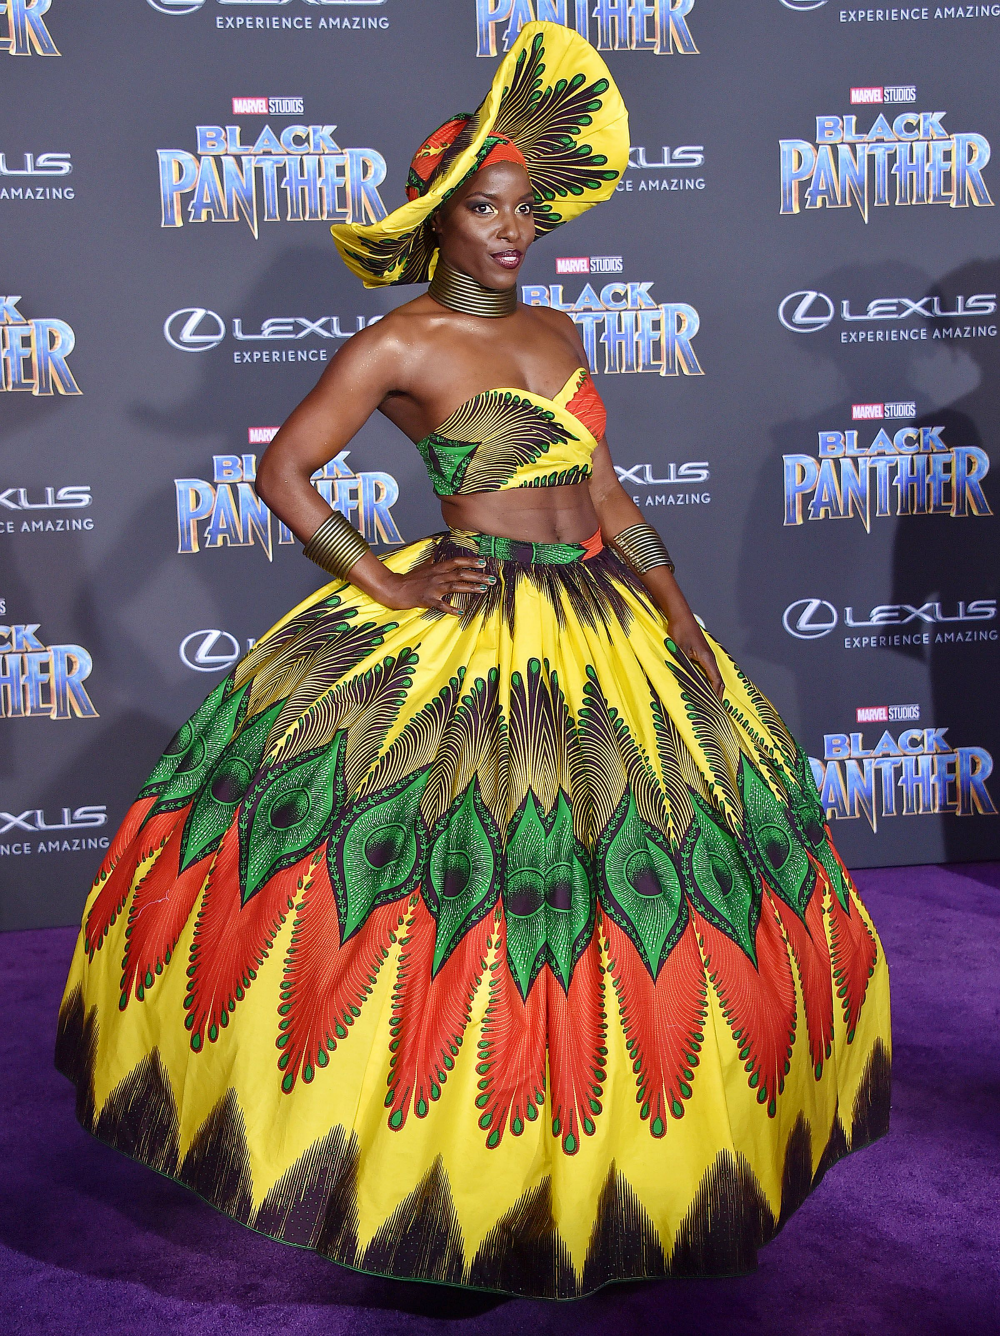 No doubt aided by the phenomenon that was Black Panther, African fashion captured consumer imaginations with its colorful wax prints, striking kente cloth and unmistakable tribal motifs. Pinterest says searches for African-influenced style soared 229 percent. Wakanda Forever, indeed.